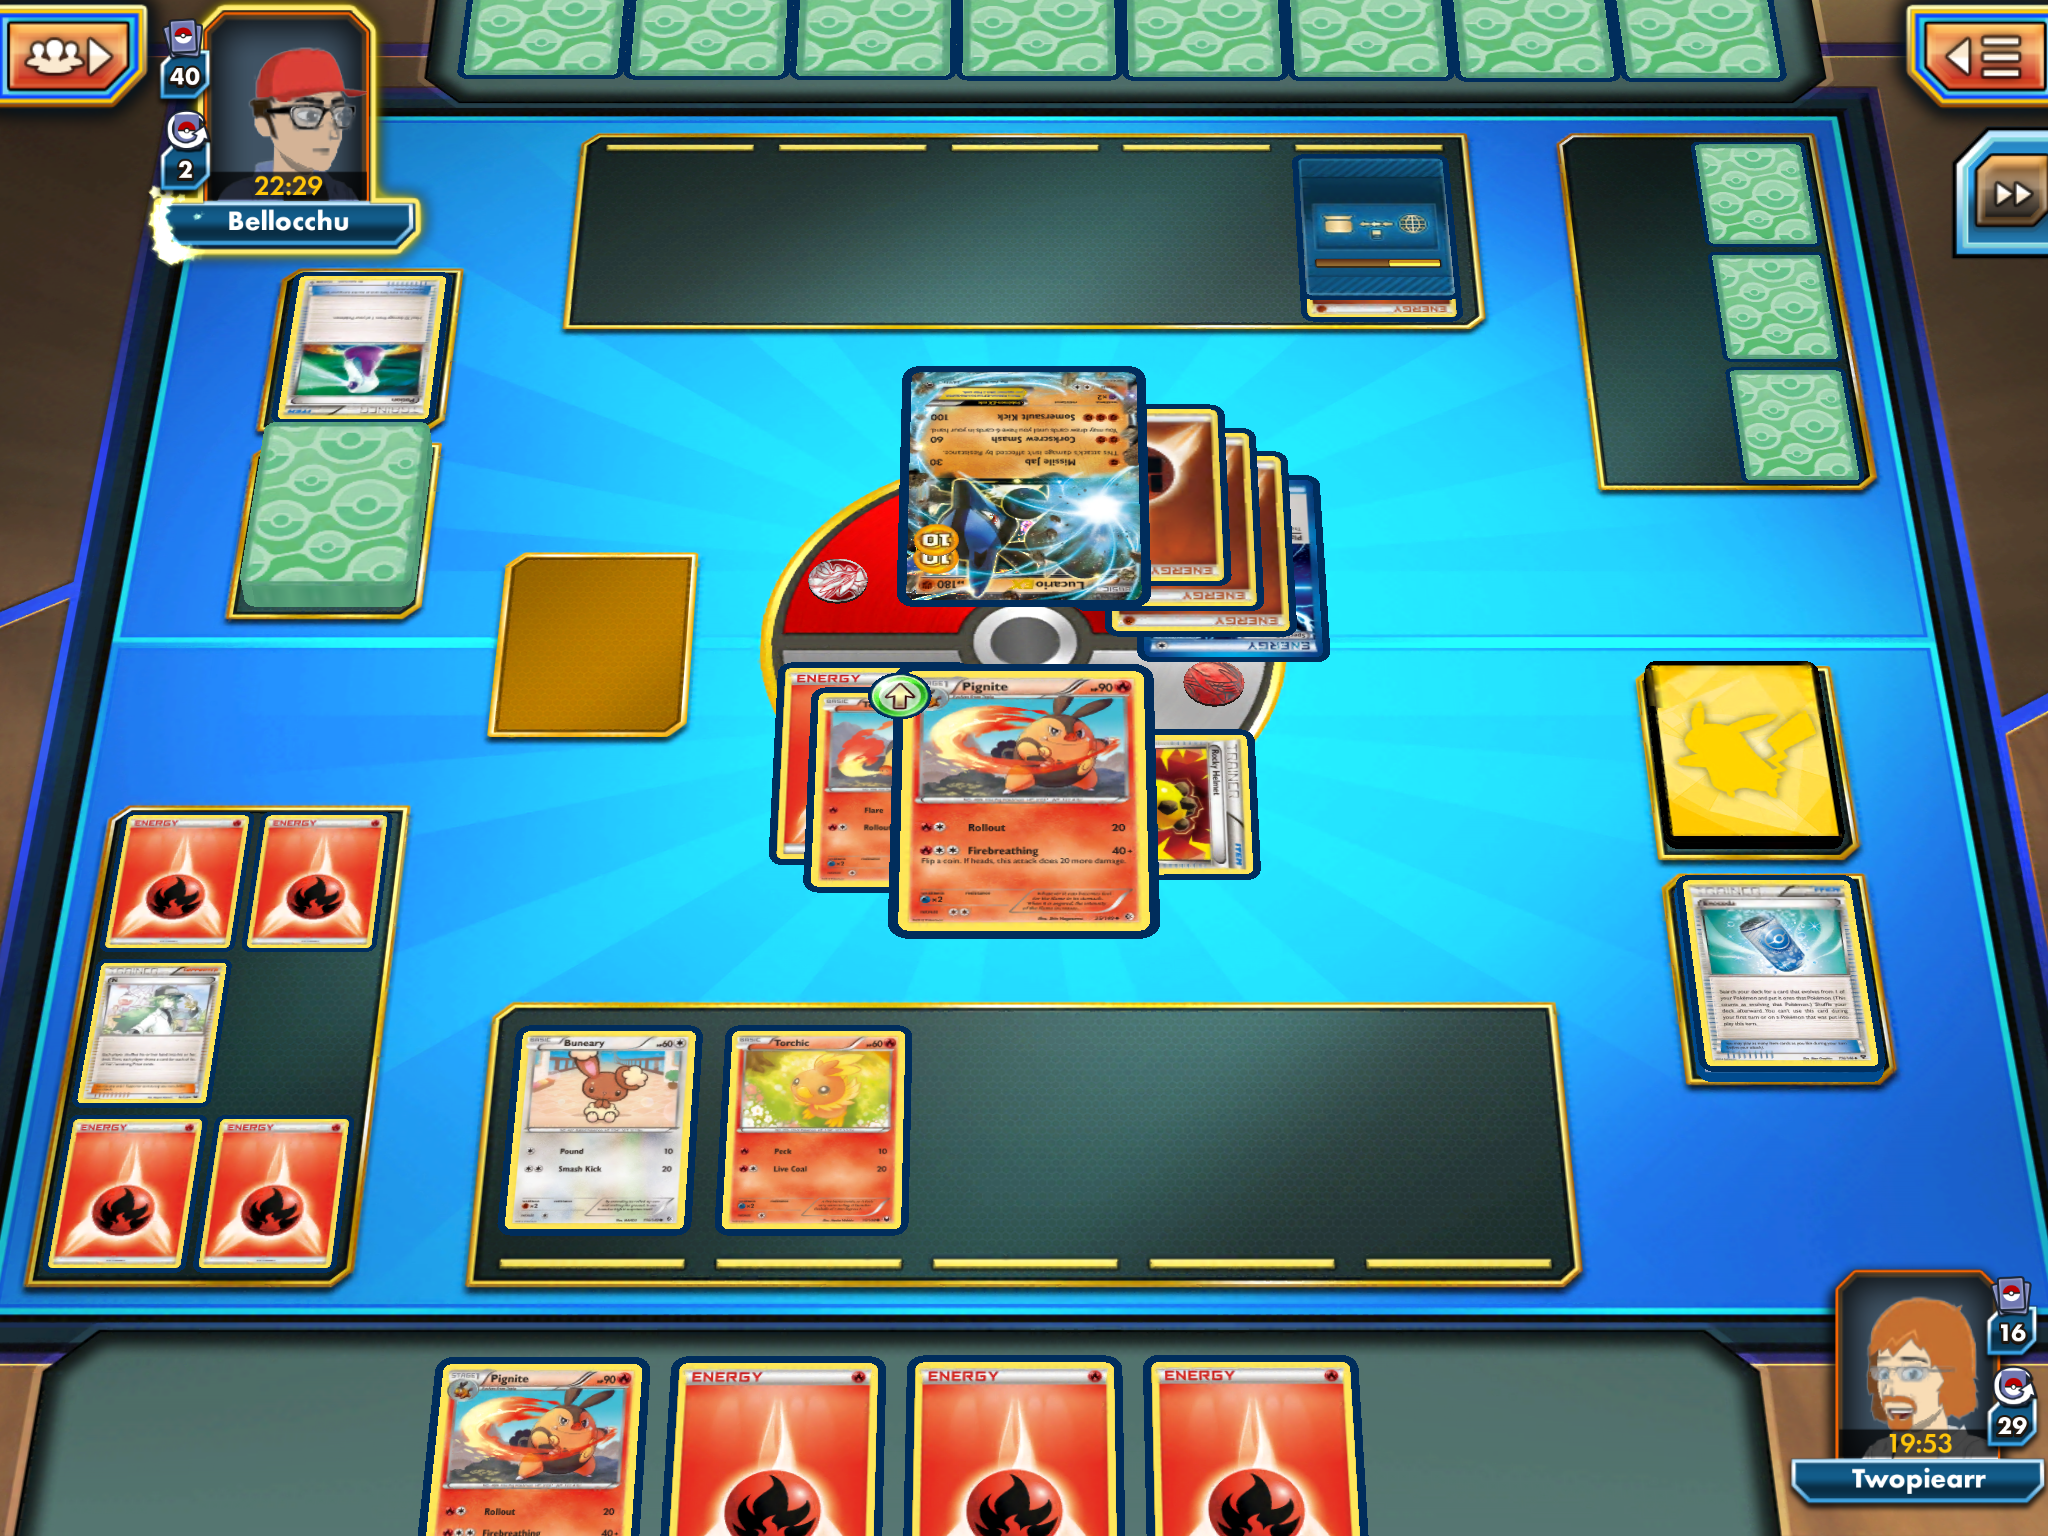 Ptcg focuses exclusively on the arena battles that make up the core of